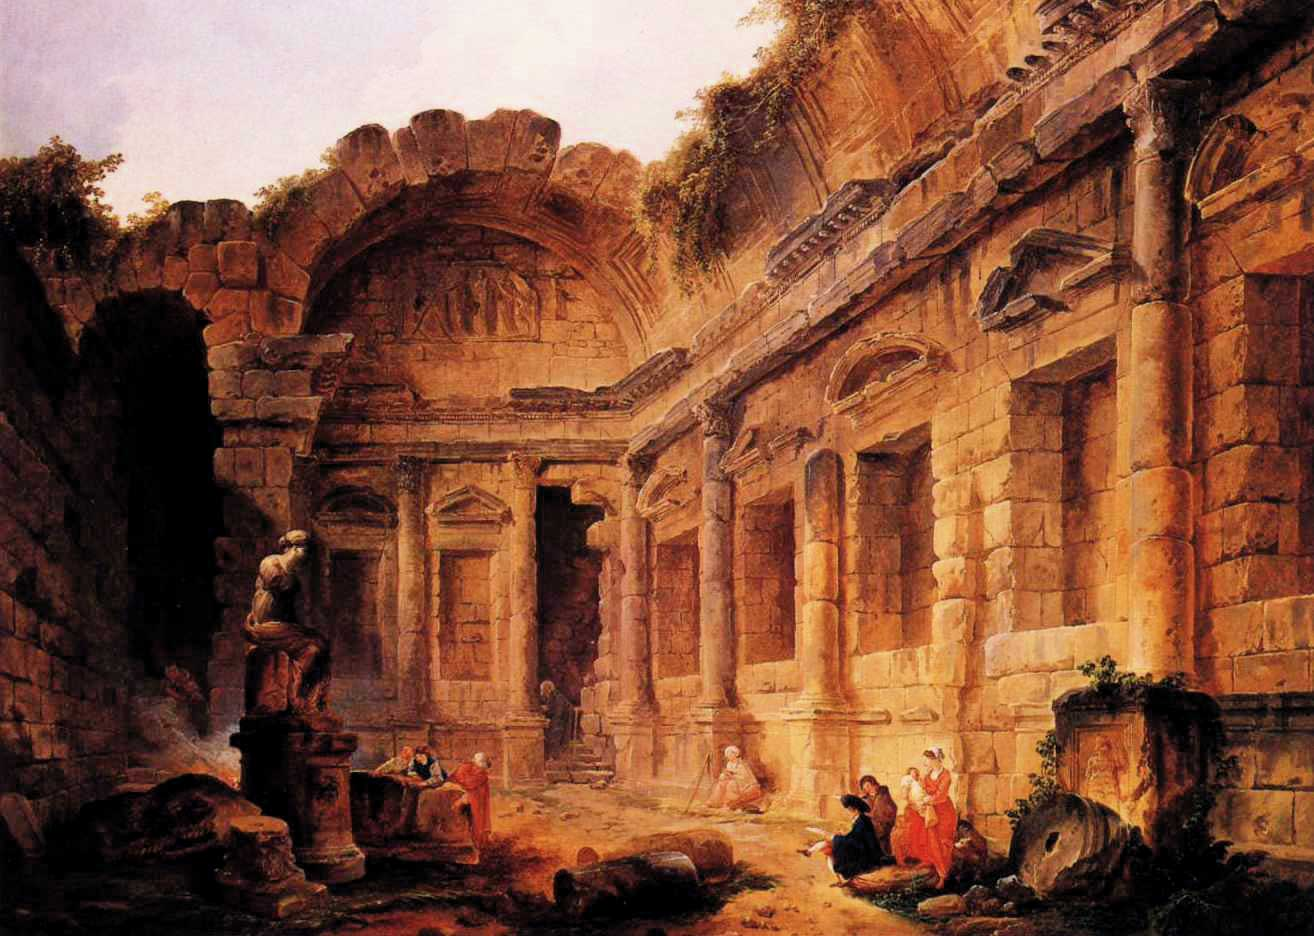 Interior of the temple of diana at nmes hubert robert architecture - Introir dijane ...